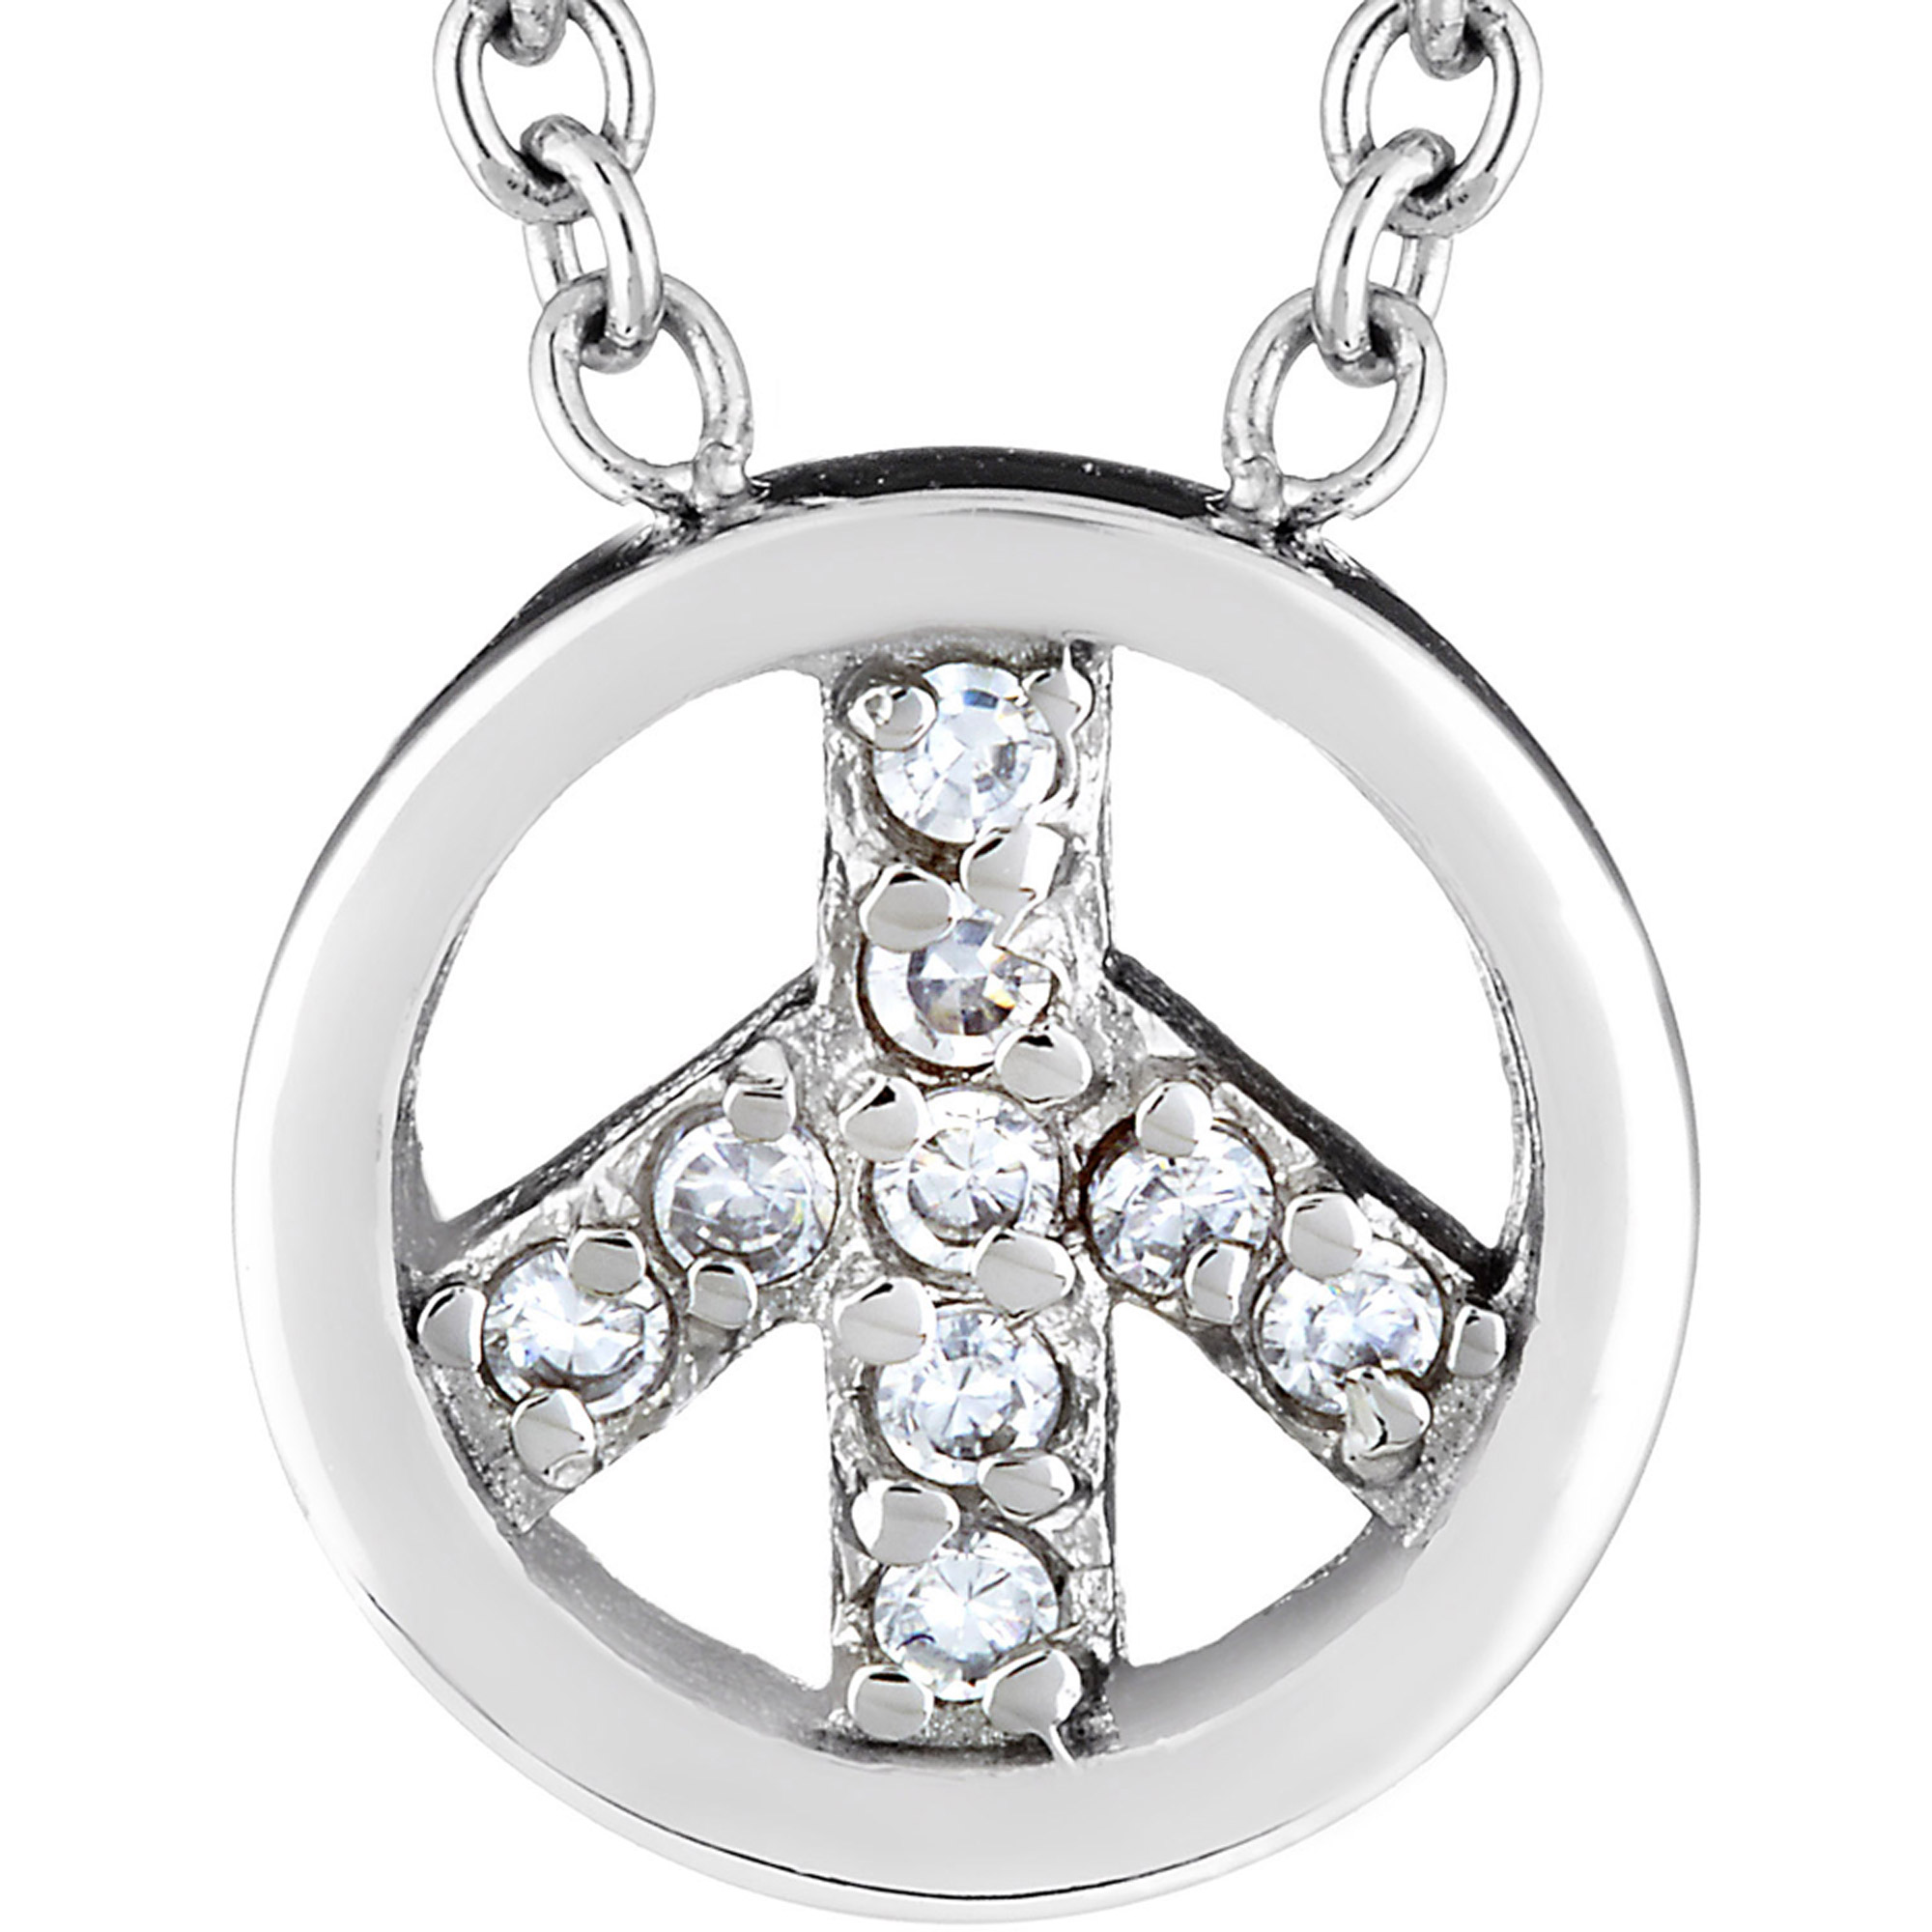 ELYA CZ Stainless Steel Peace Charm Necklace